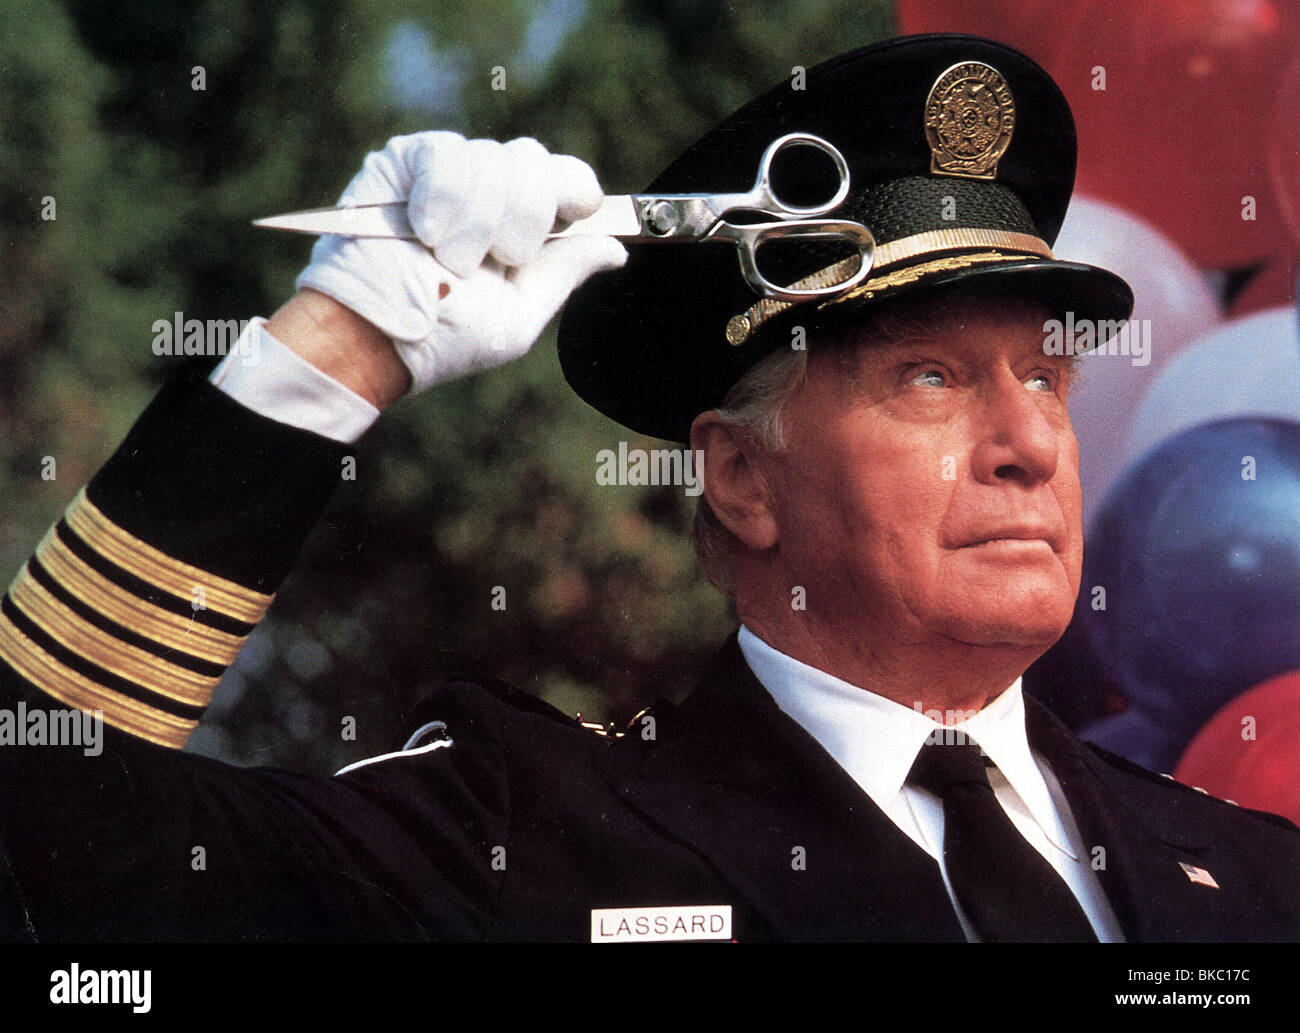 POLICE ACADEMY 6 CITY UNDER SIEGE (1989) GEORGE GAYNES PA6 002FOH  sc 1 st  Alamy : police academy costume  - Germanpascual.Com